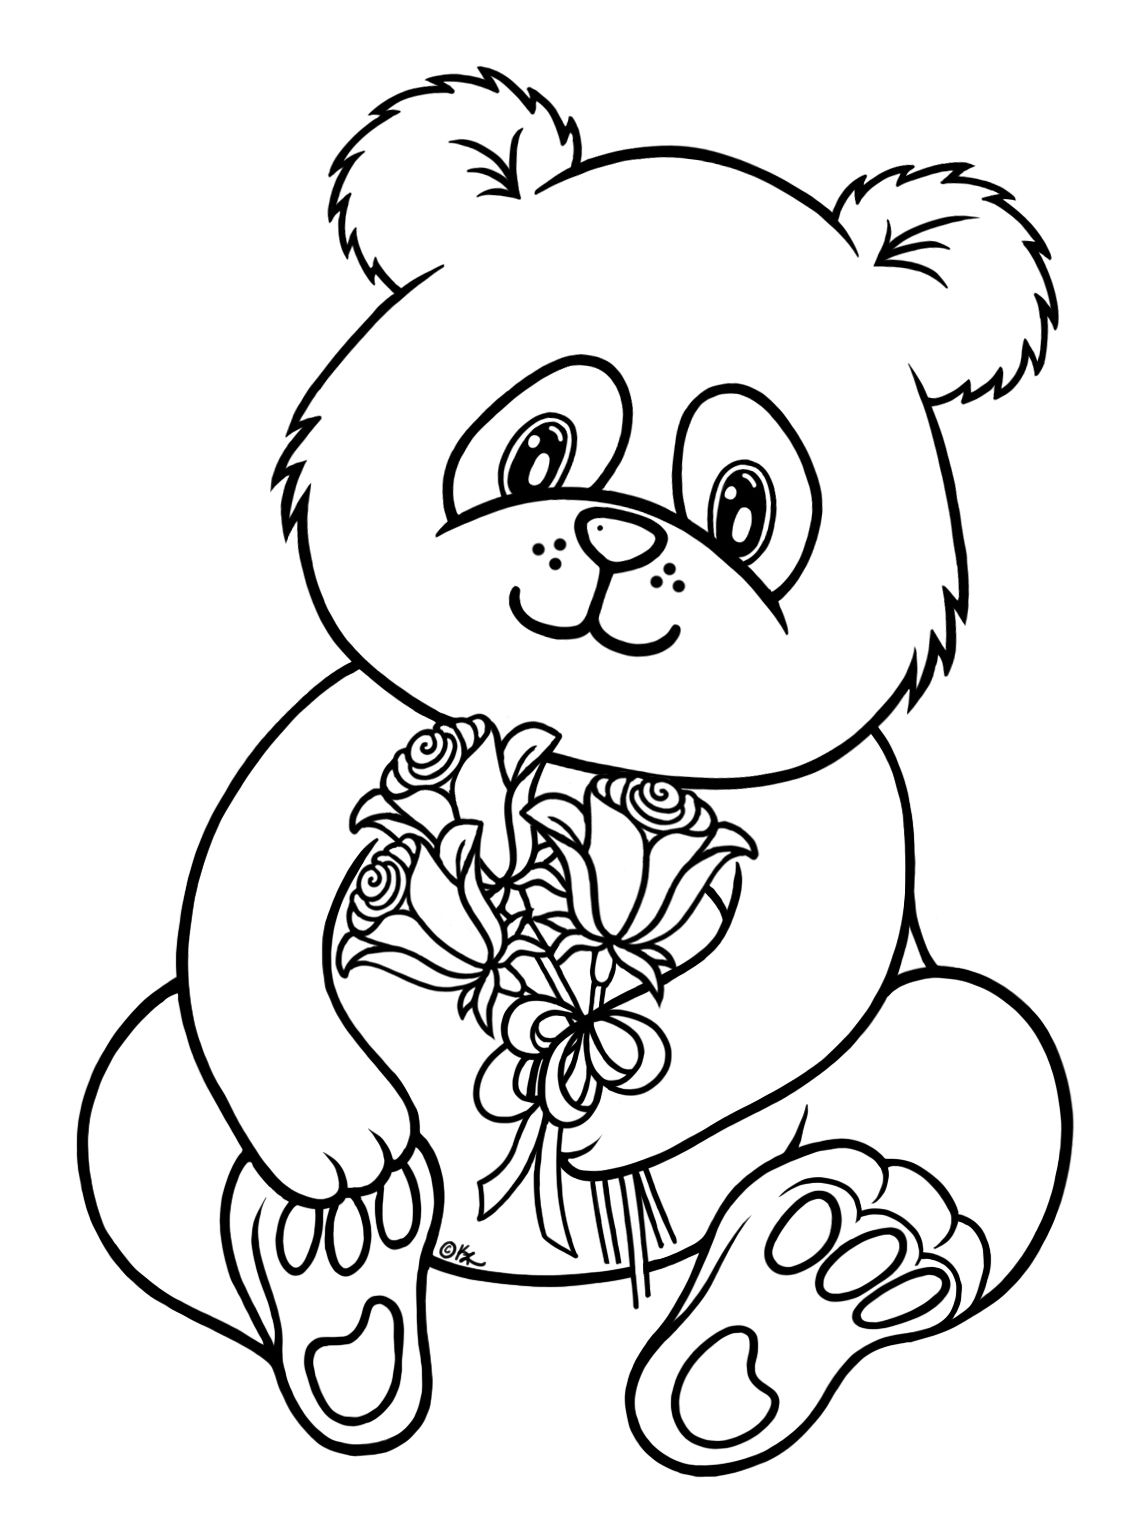 1135x1531 Cute Baby Panda Coloring Pages Only Coloring Pages Coloring